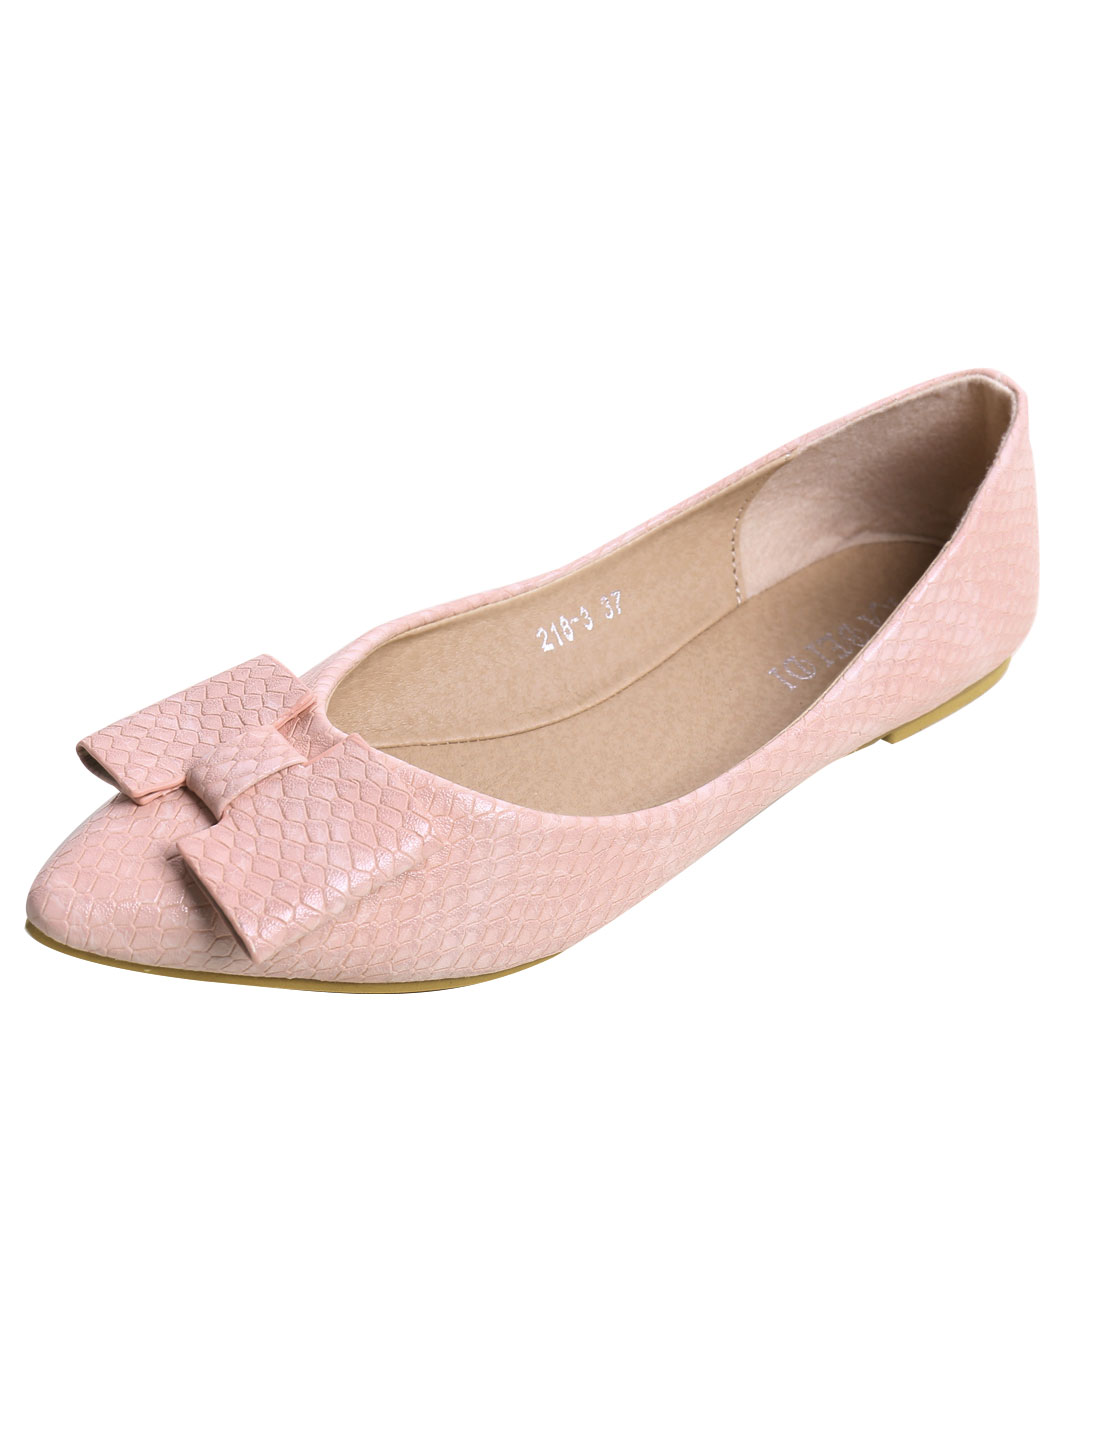 Ladies Point Toe Snake-effect Faux Leather Flat Shoes Pink US 7